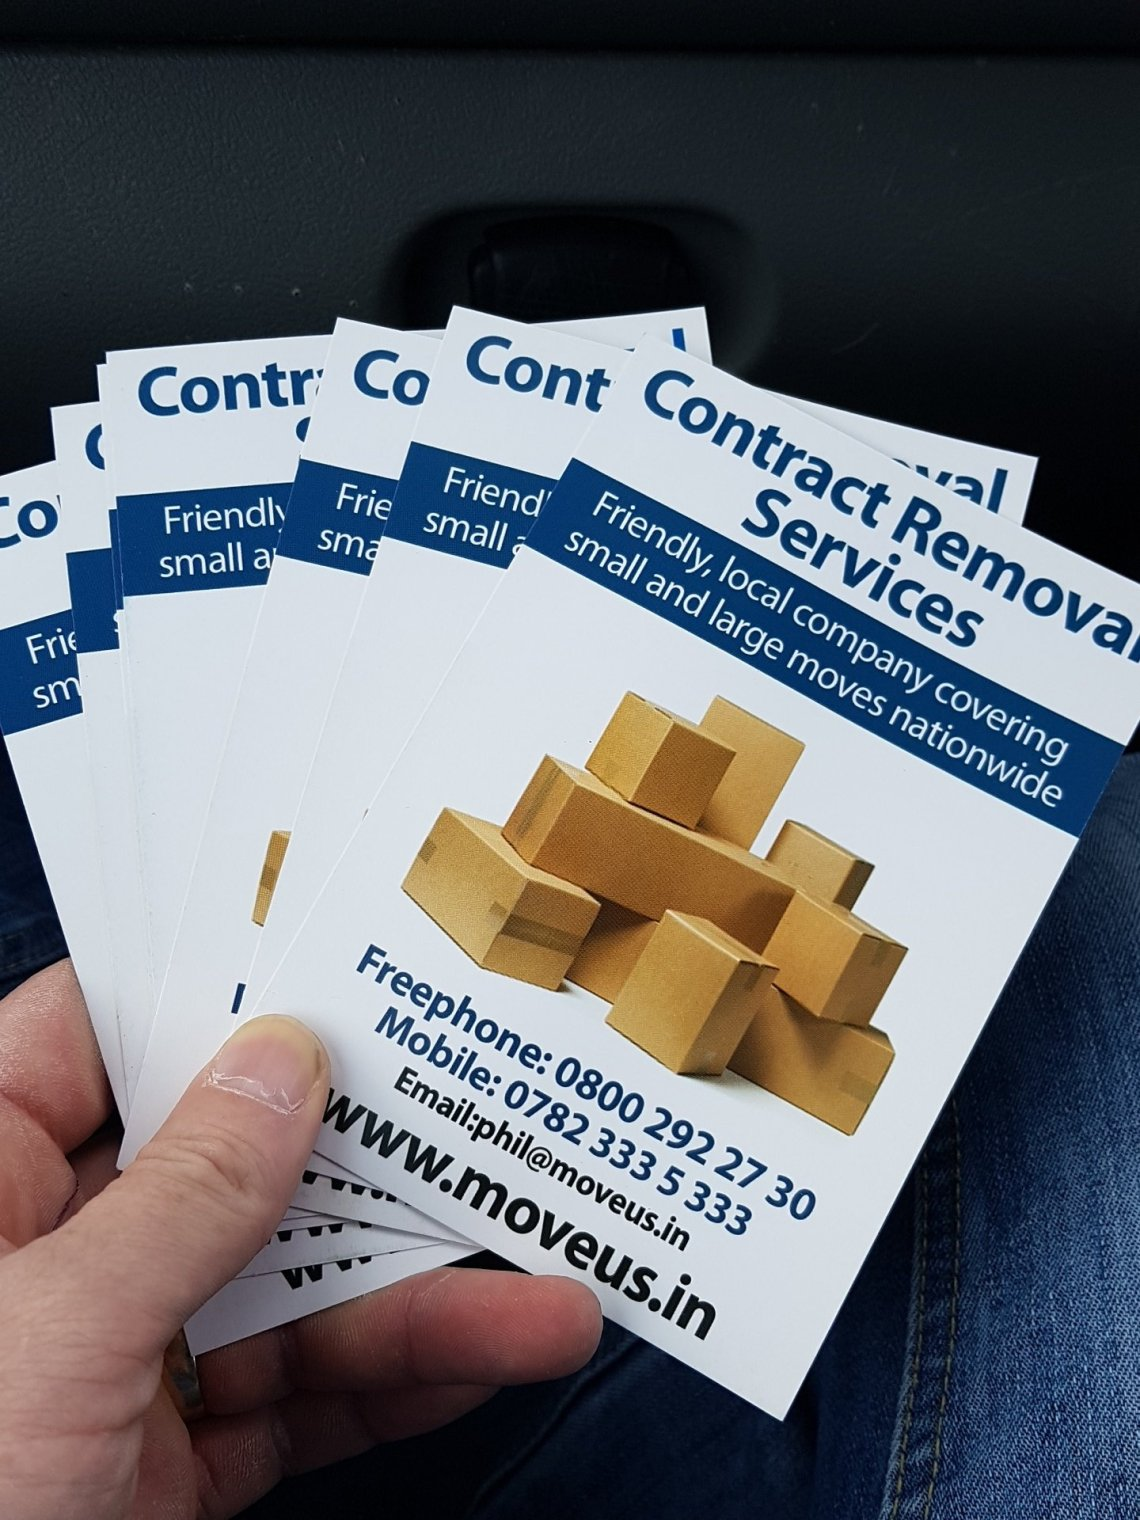 out-delivering-these-today-give-us-a-shout-for-a-quote-removals-norwich-https-t-co-0d4juwgkrq